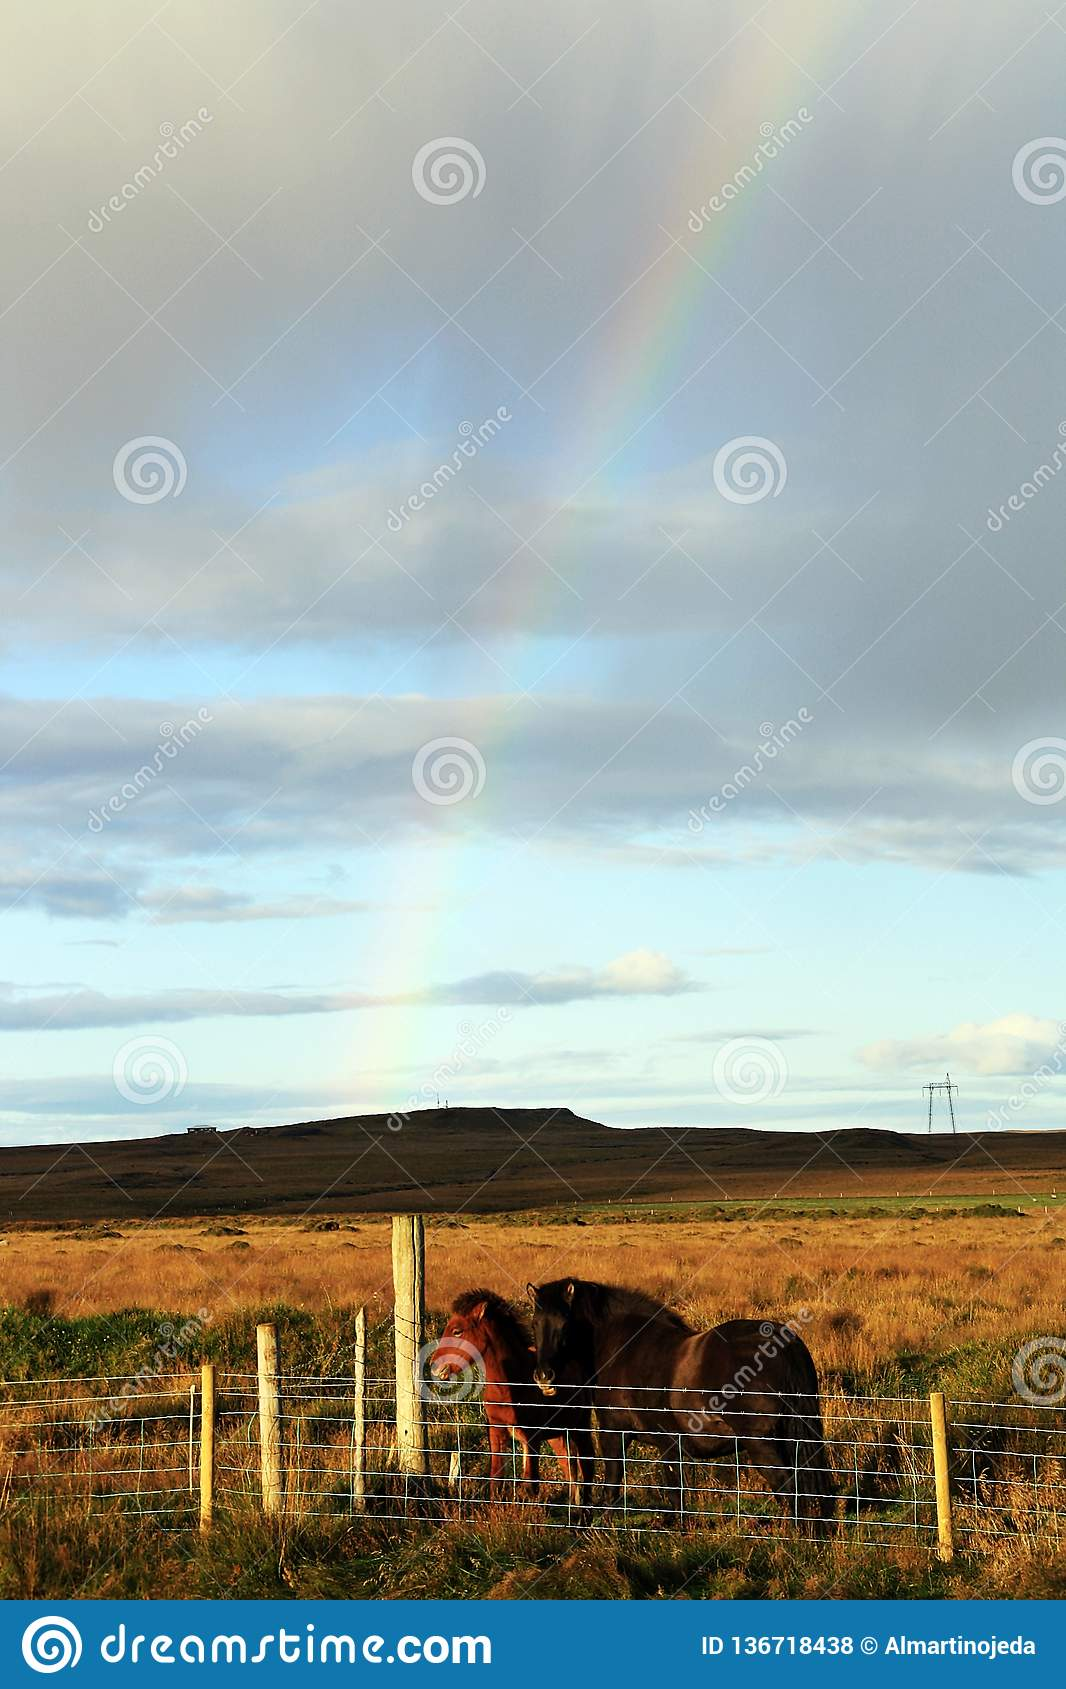 Icelandic horses in a sunny day with a beautiful rainbow.